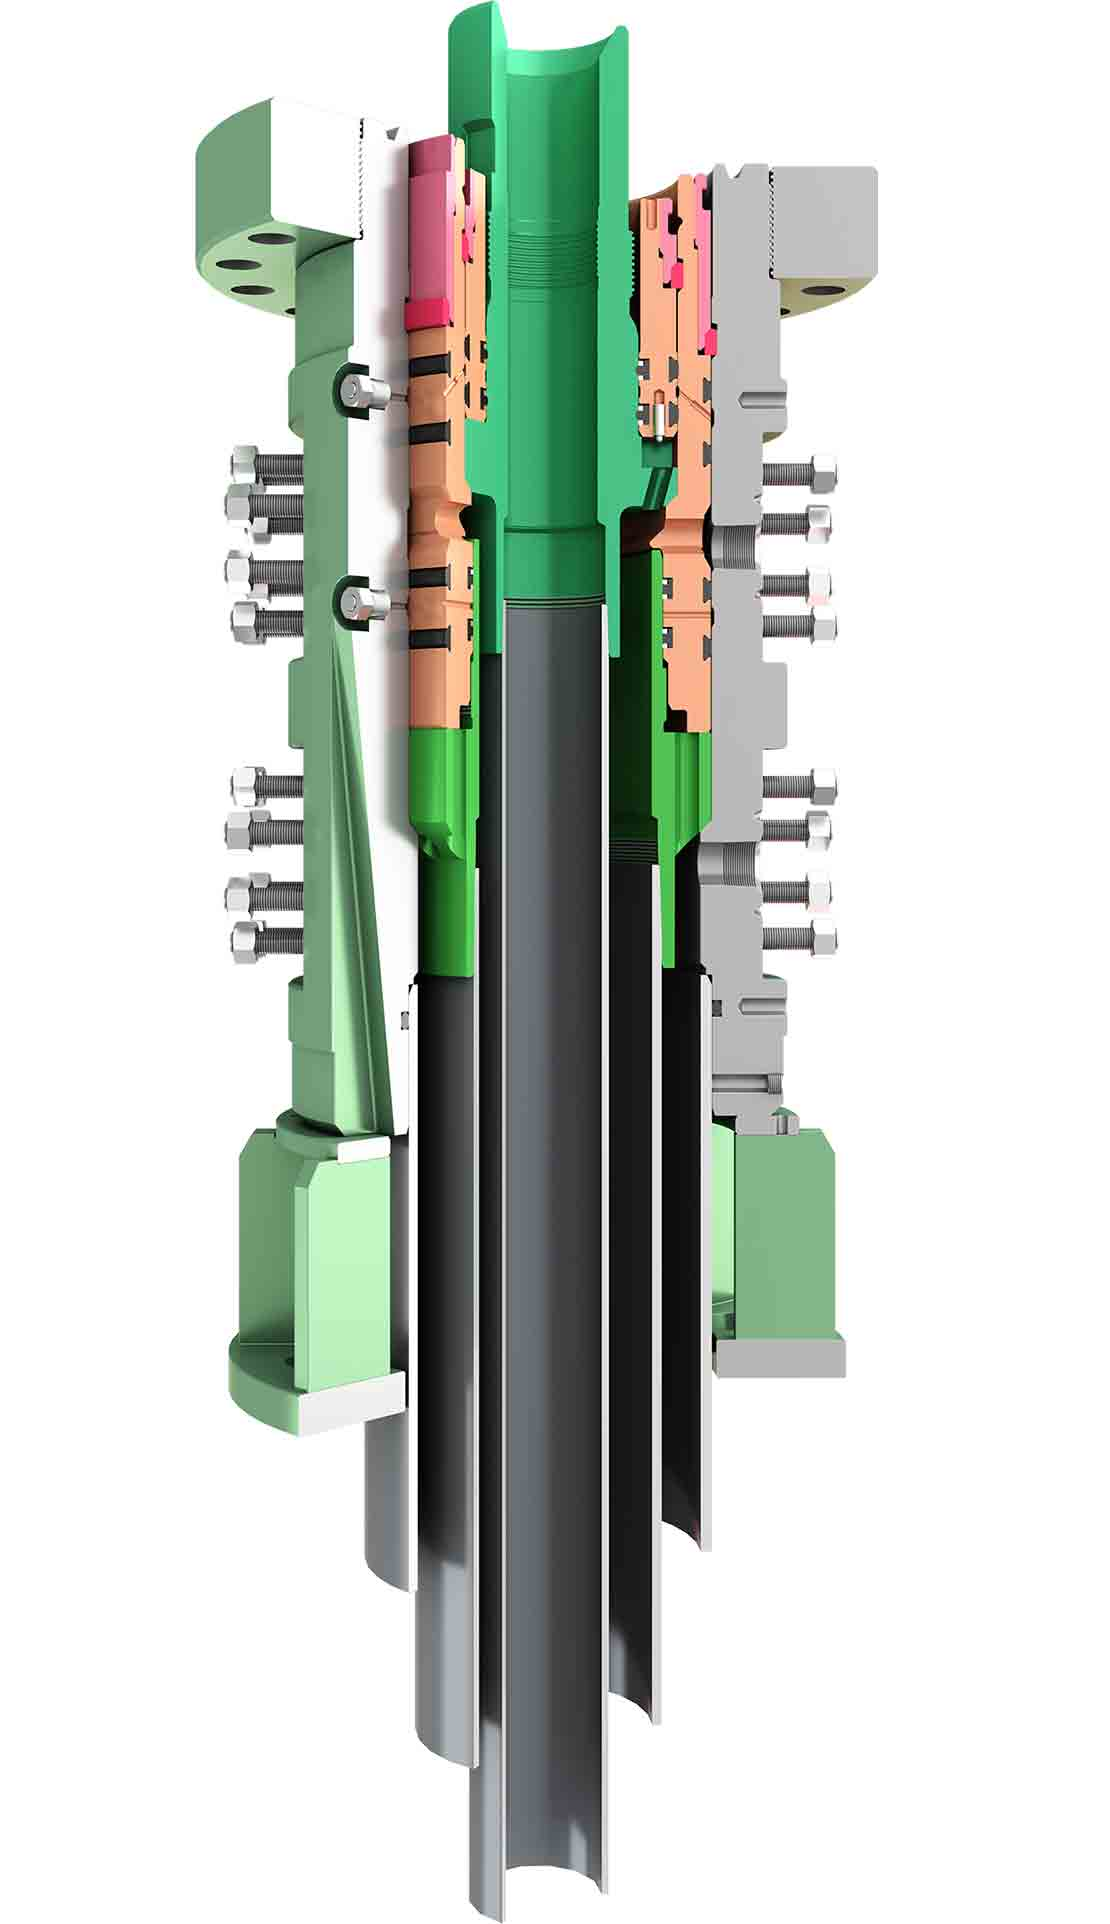 Crossection illustration of the MN-DS wellhead system